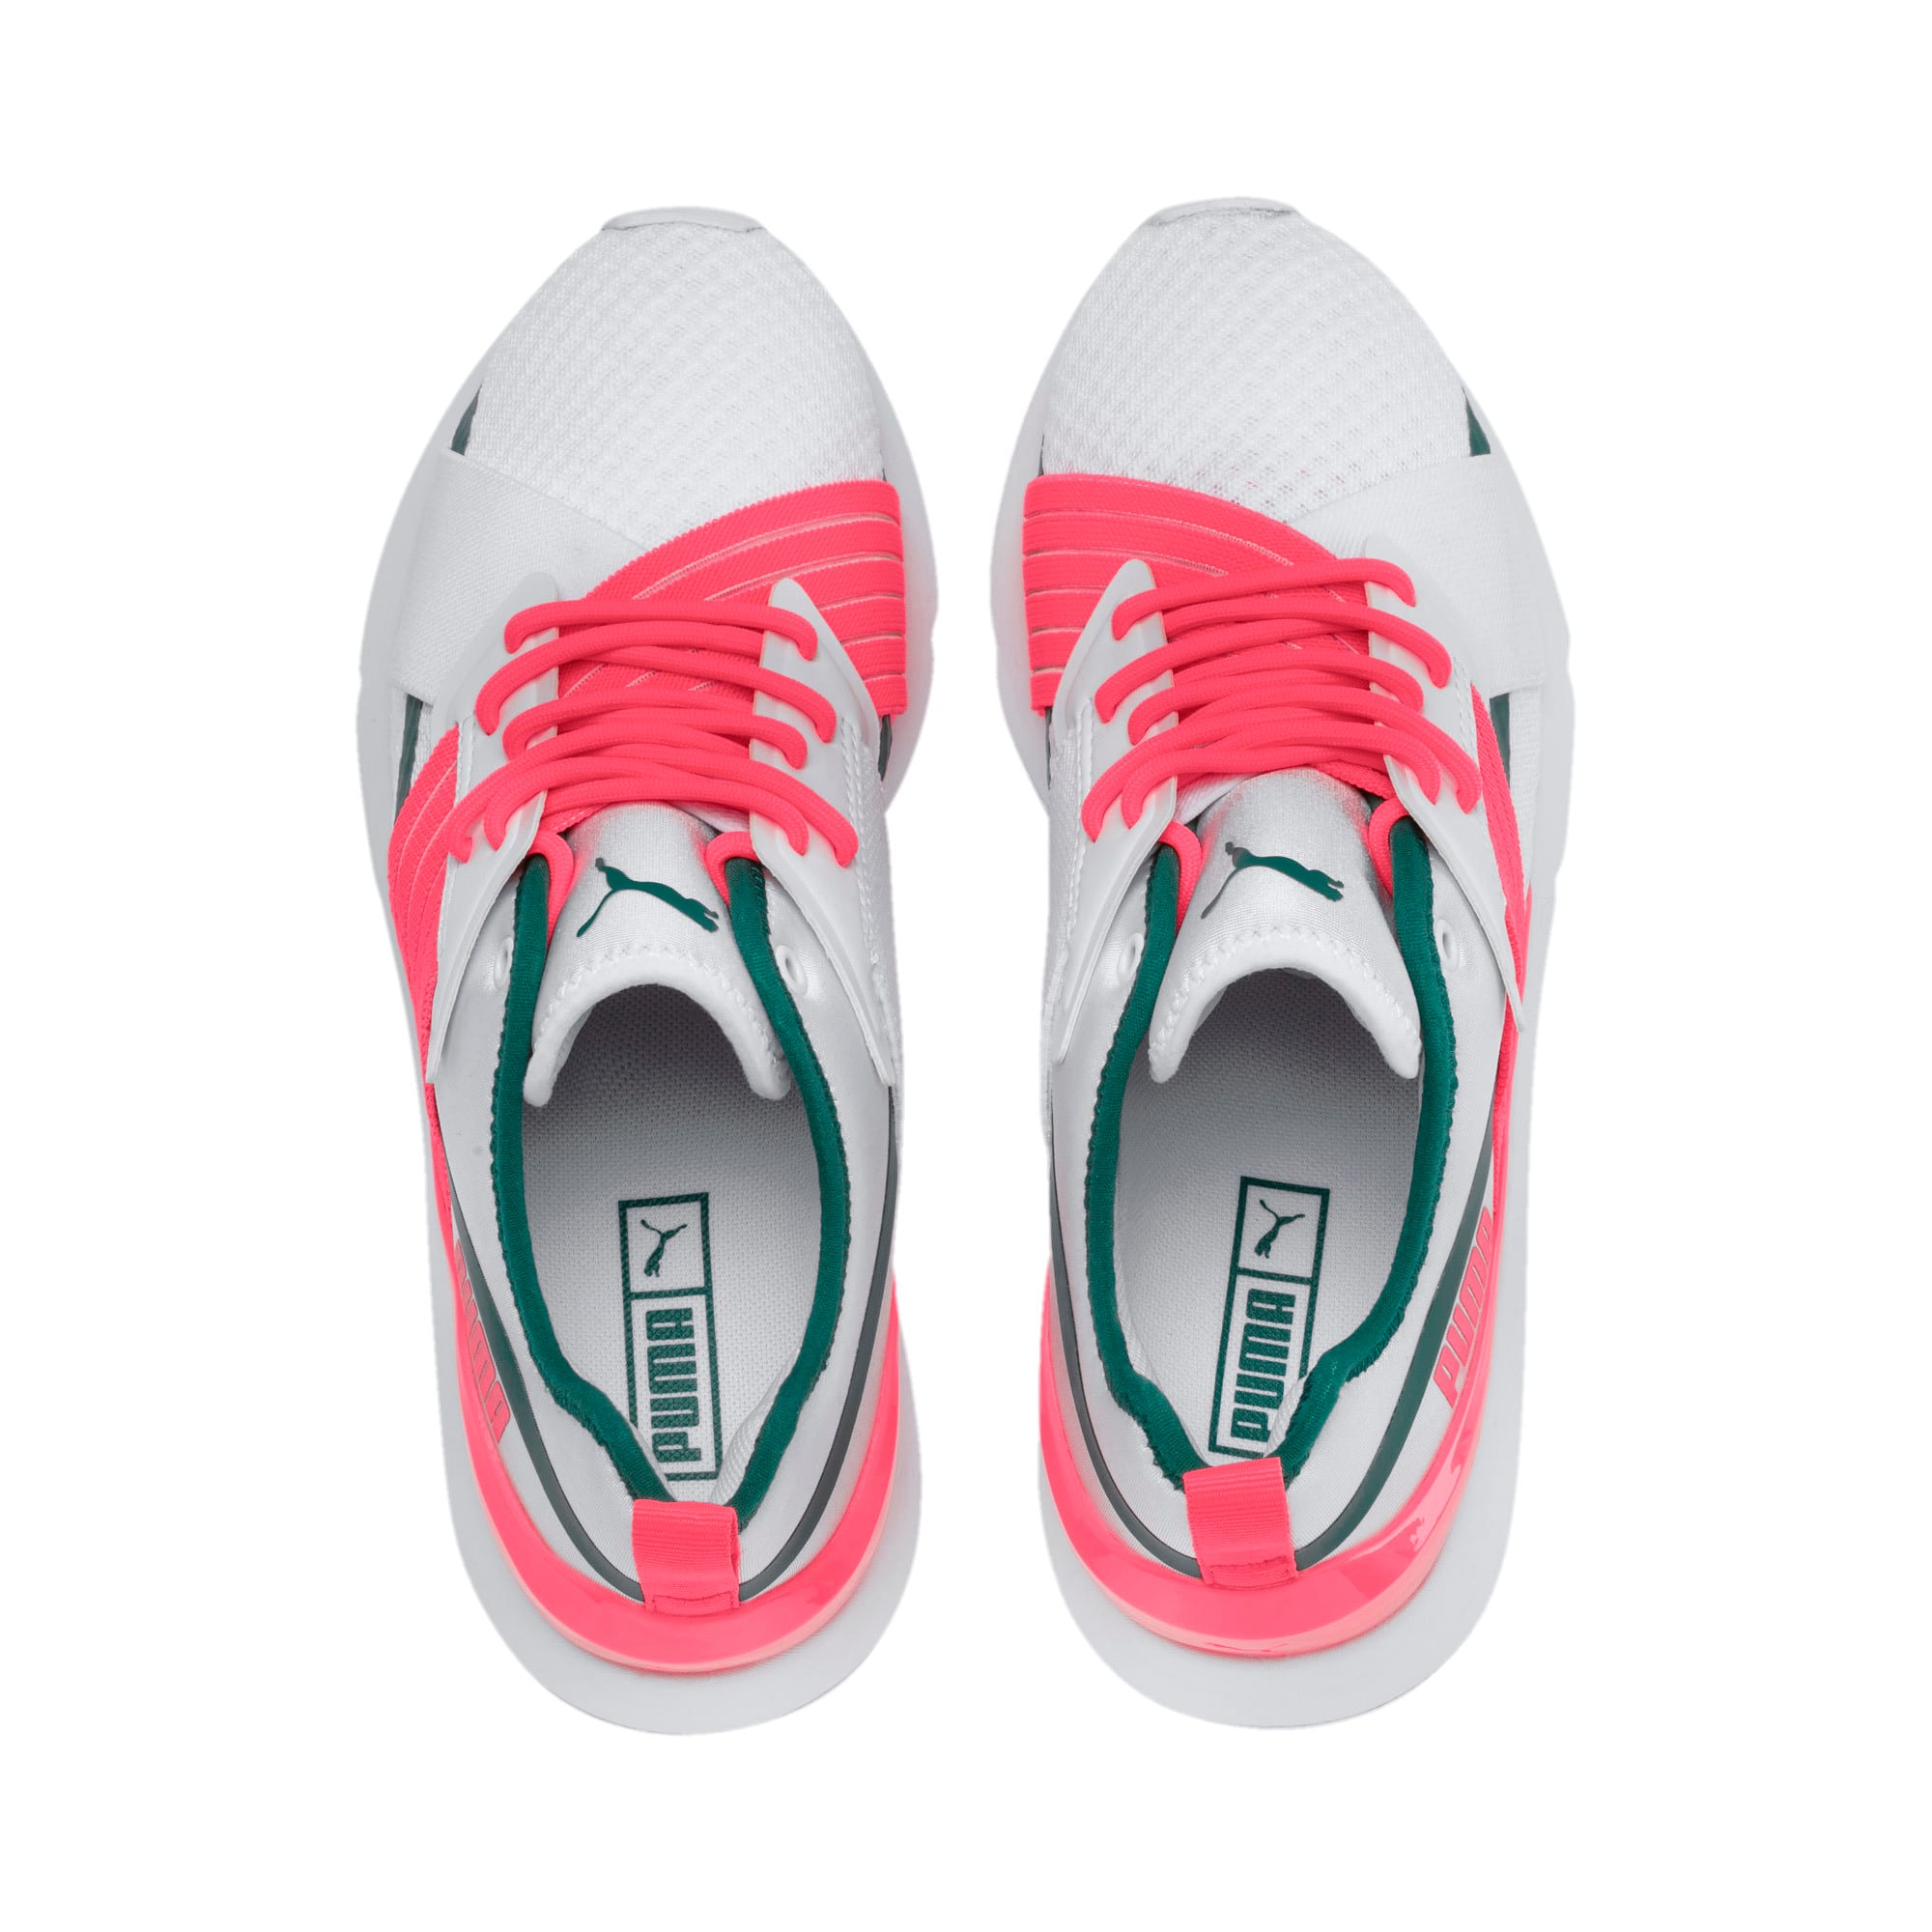 Thumbnail 7 of Muse X-2 Damen Sneaker, Puma White-Pink Alert, medium